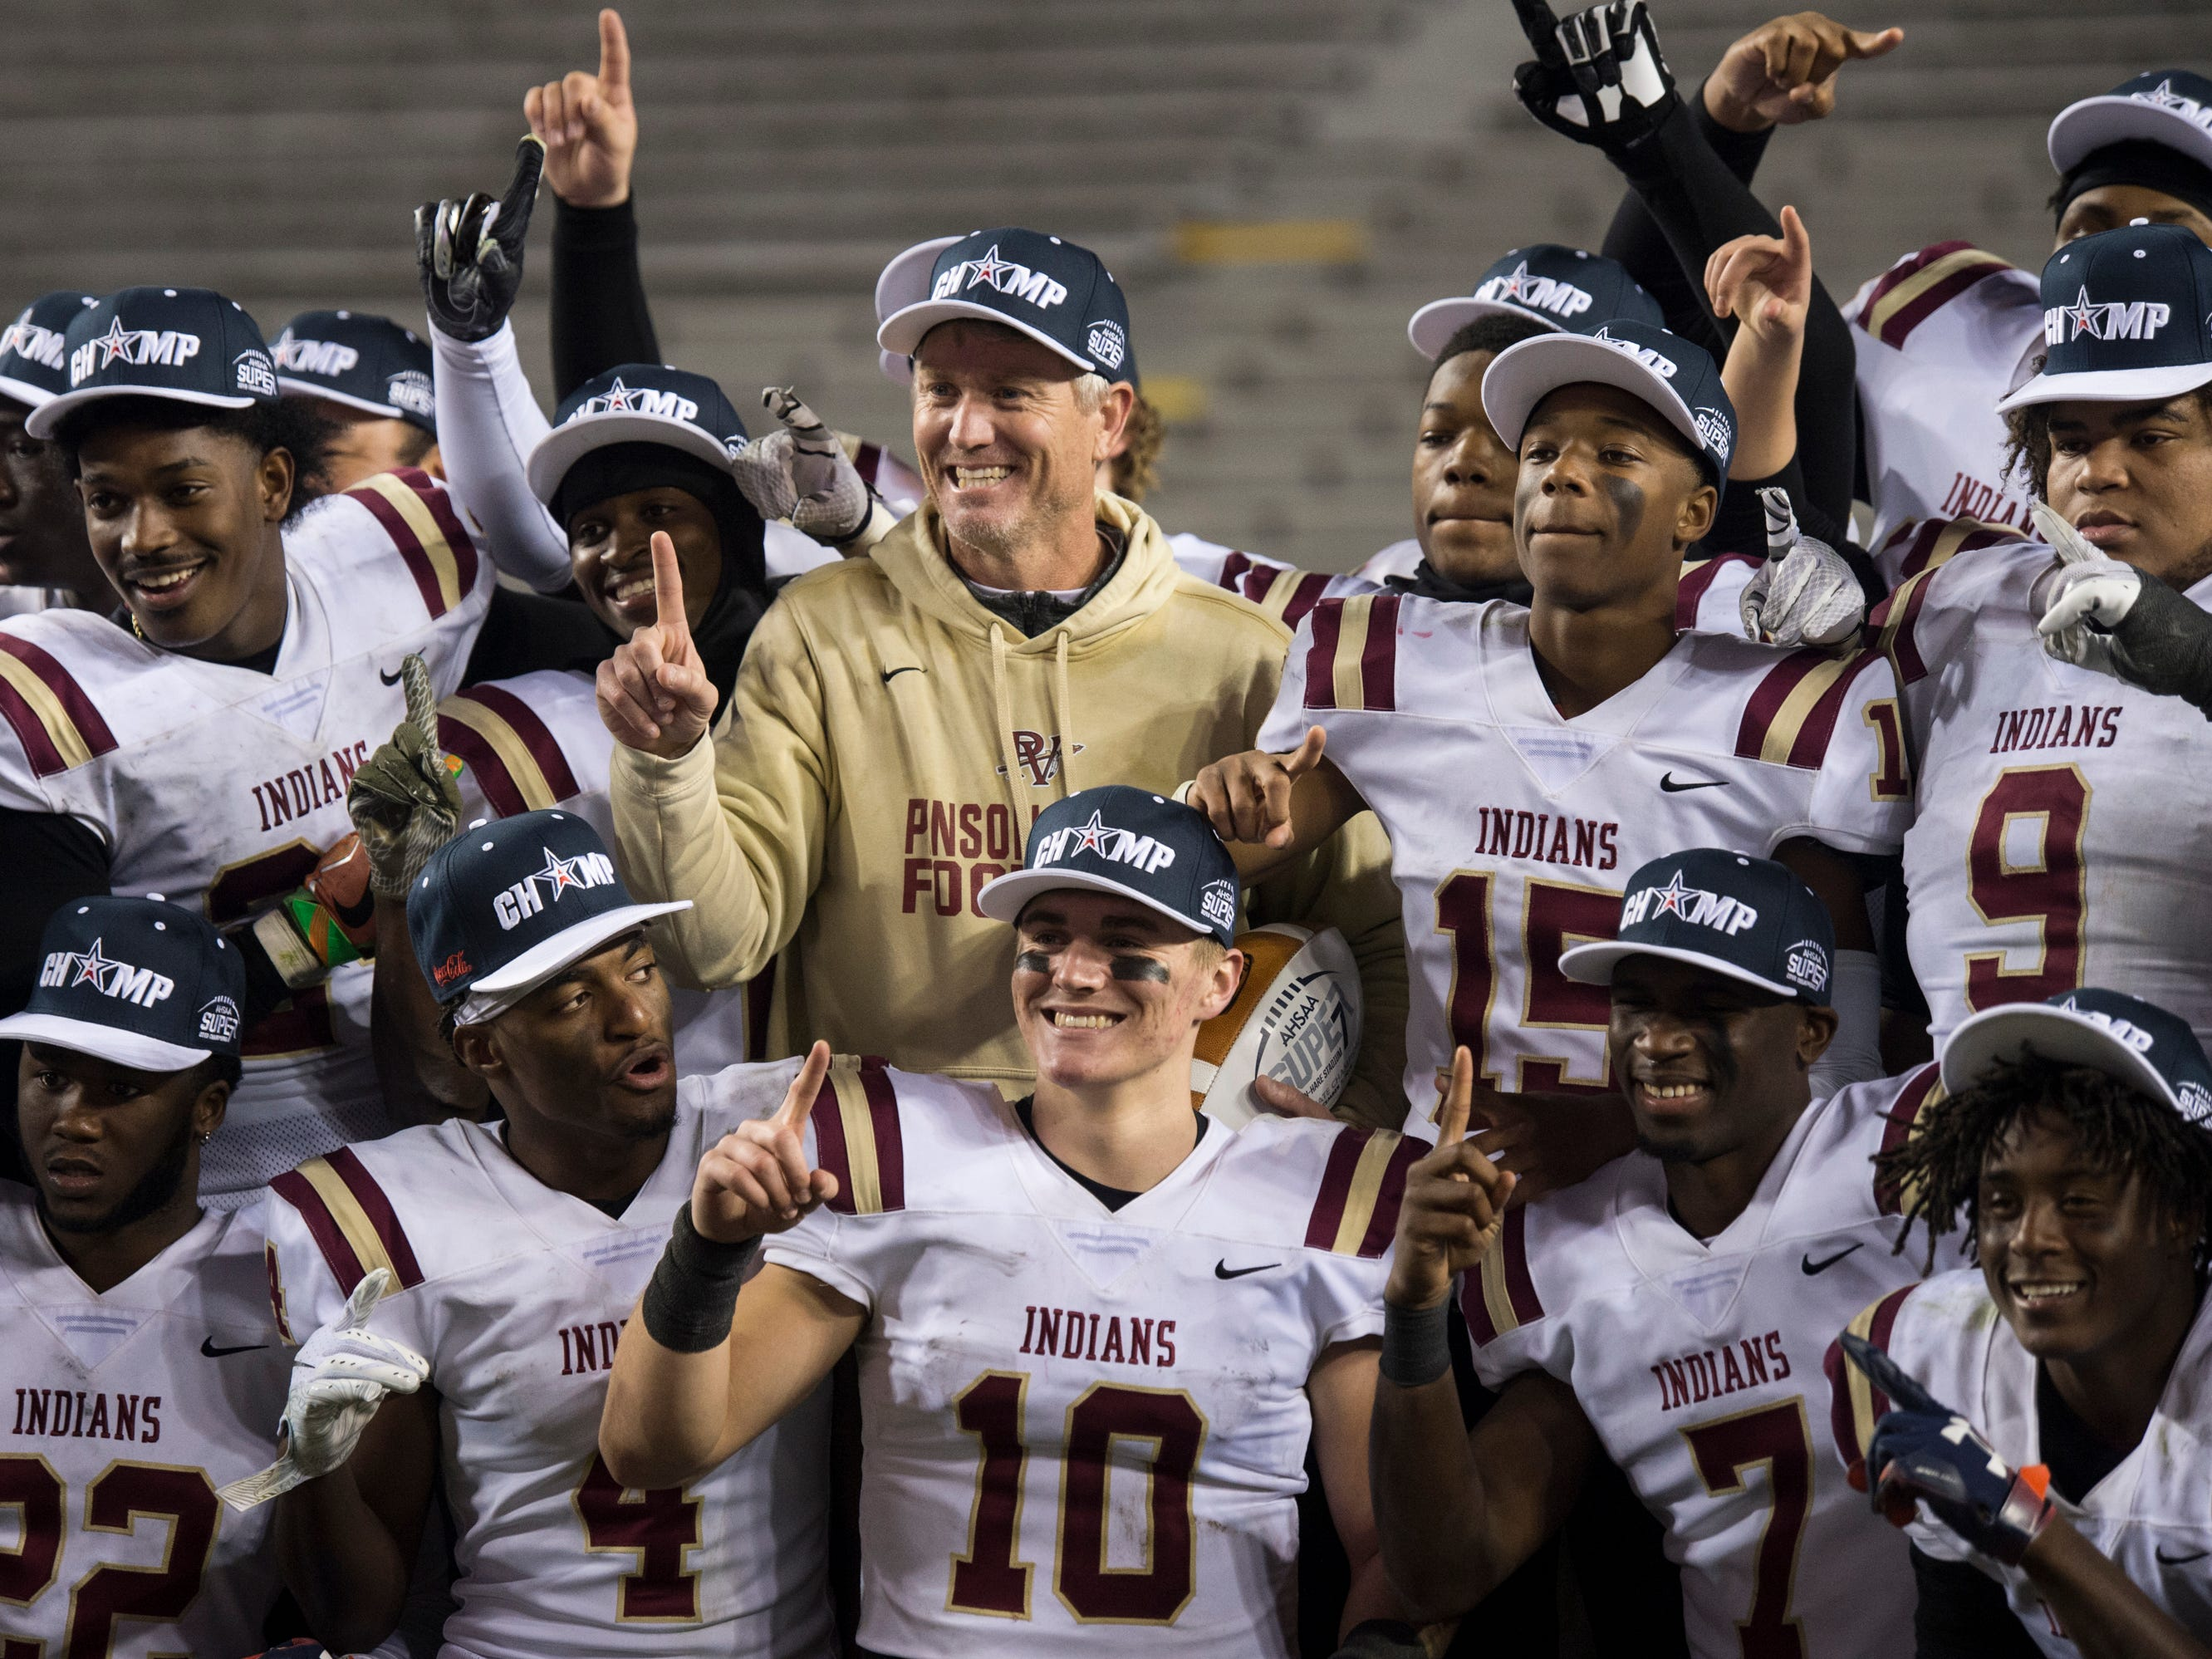 Pinson Valley coach Patrick Nix poses for a picture with his team during the Class 6A state championship at Jordan-Hare Stadium in Auburn, Ala., on Friday, Dec. 7, 2018. Pinson Valley defeated Saraland 26-17.